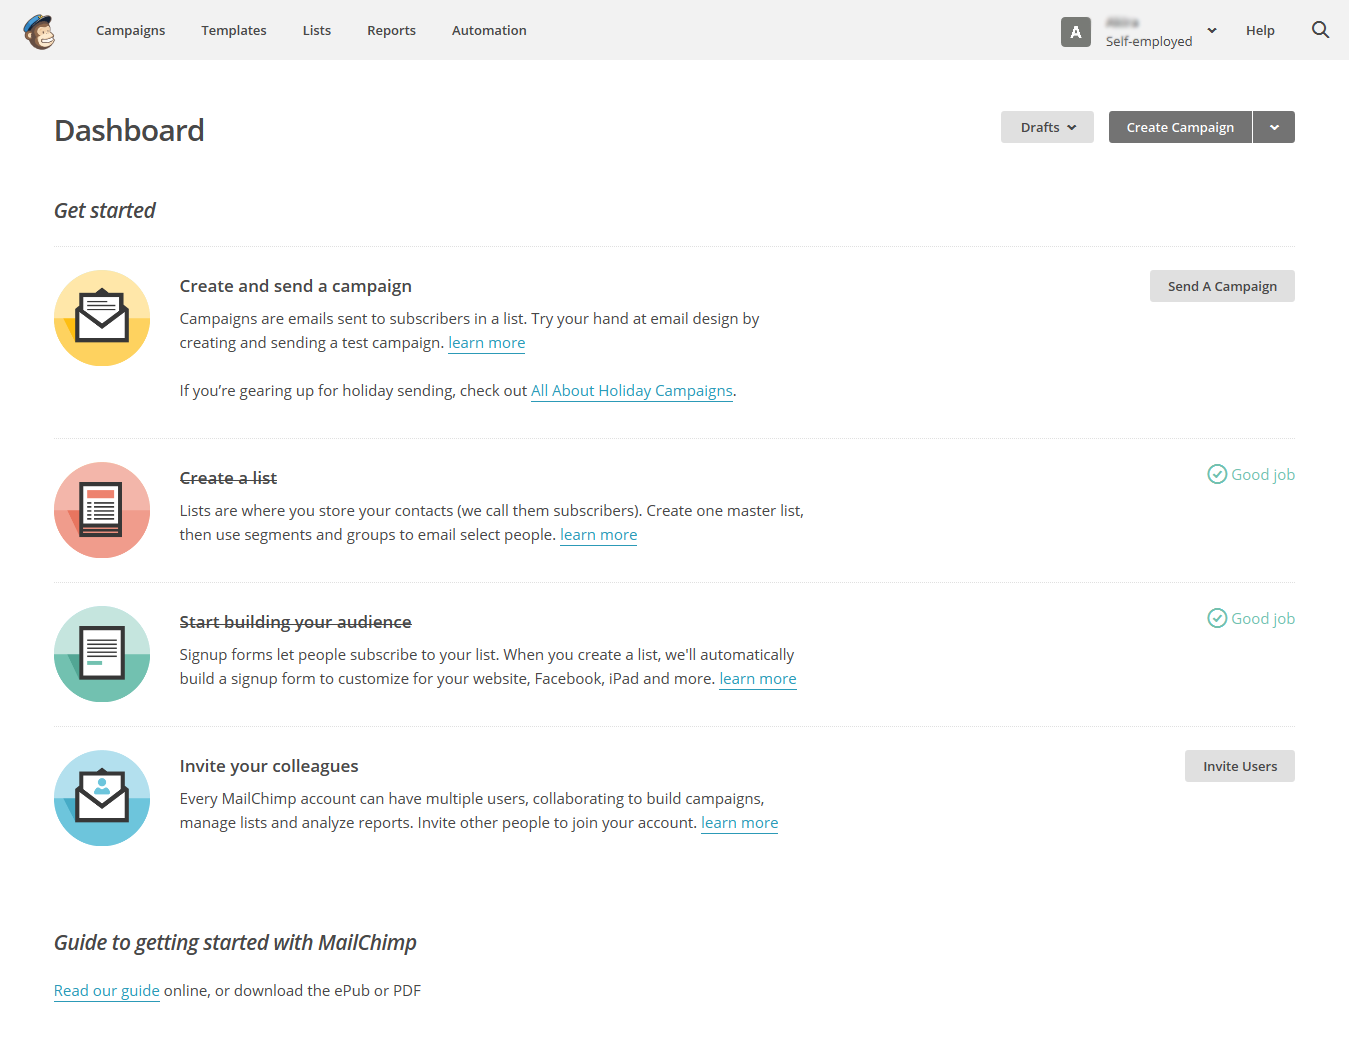 Completed actions in MailChimp web UI